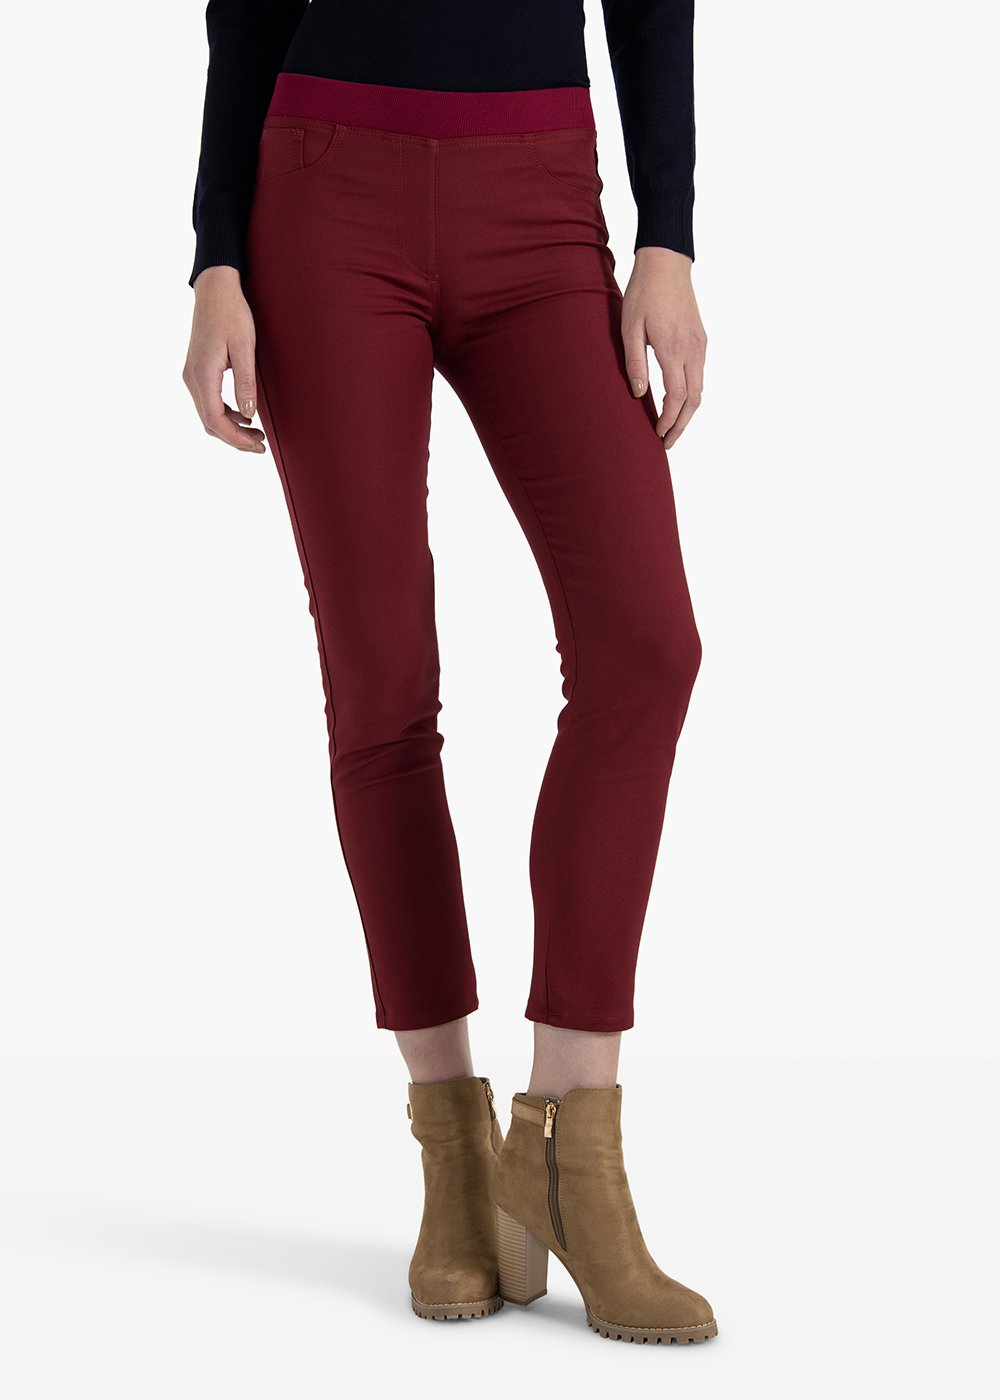 Trousers Kate in cherry-colored elastic cotton - Black cherry - Woman